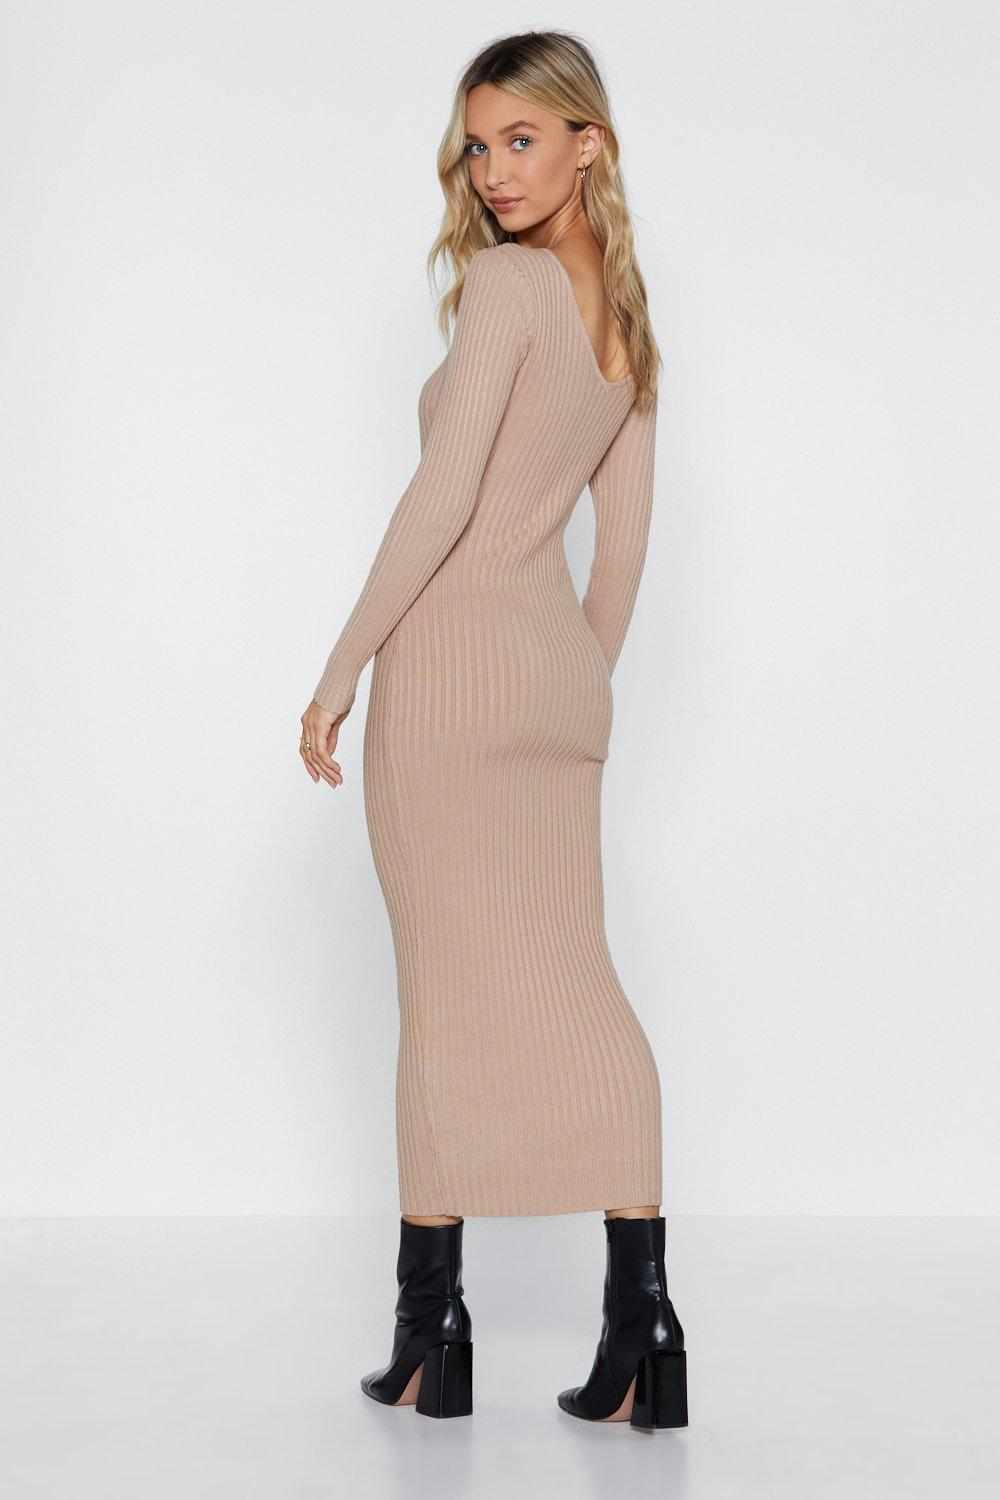 2c5ae7a51ae8 Hover to zoom · Womens Stone It's Knit the End of the World Midi Dress